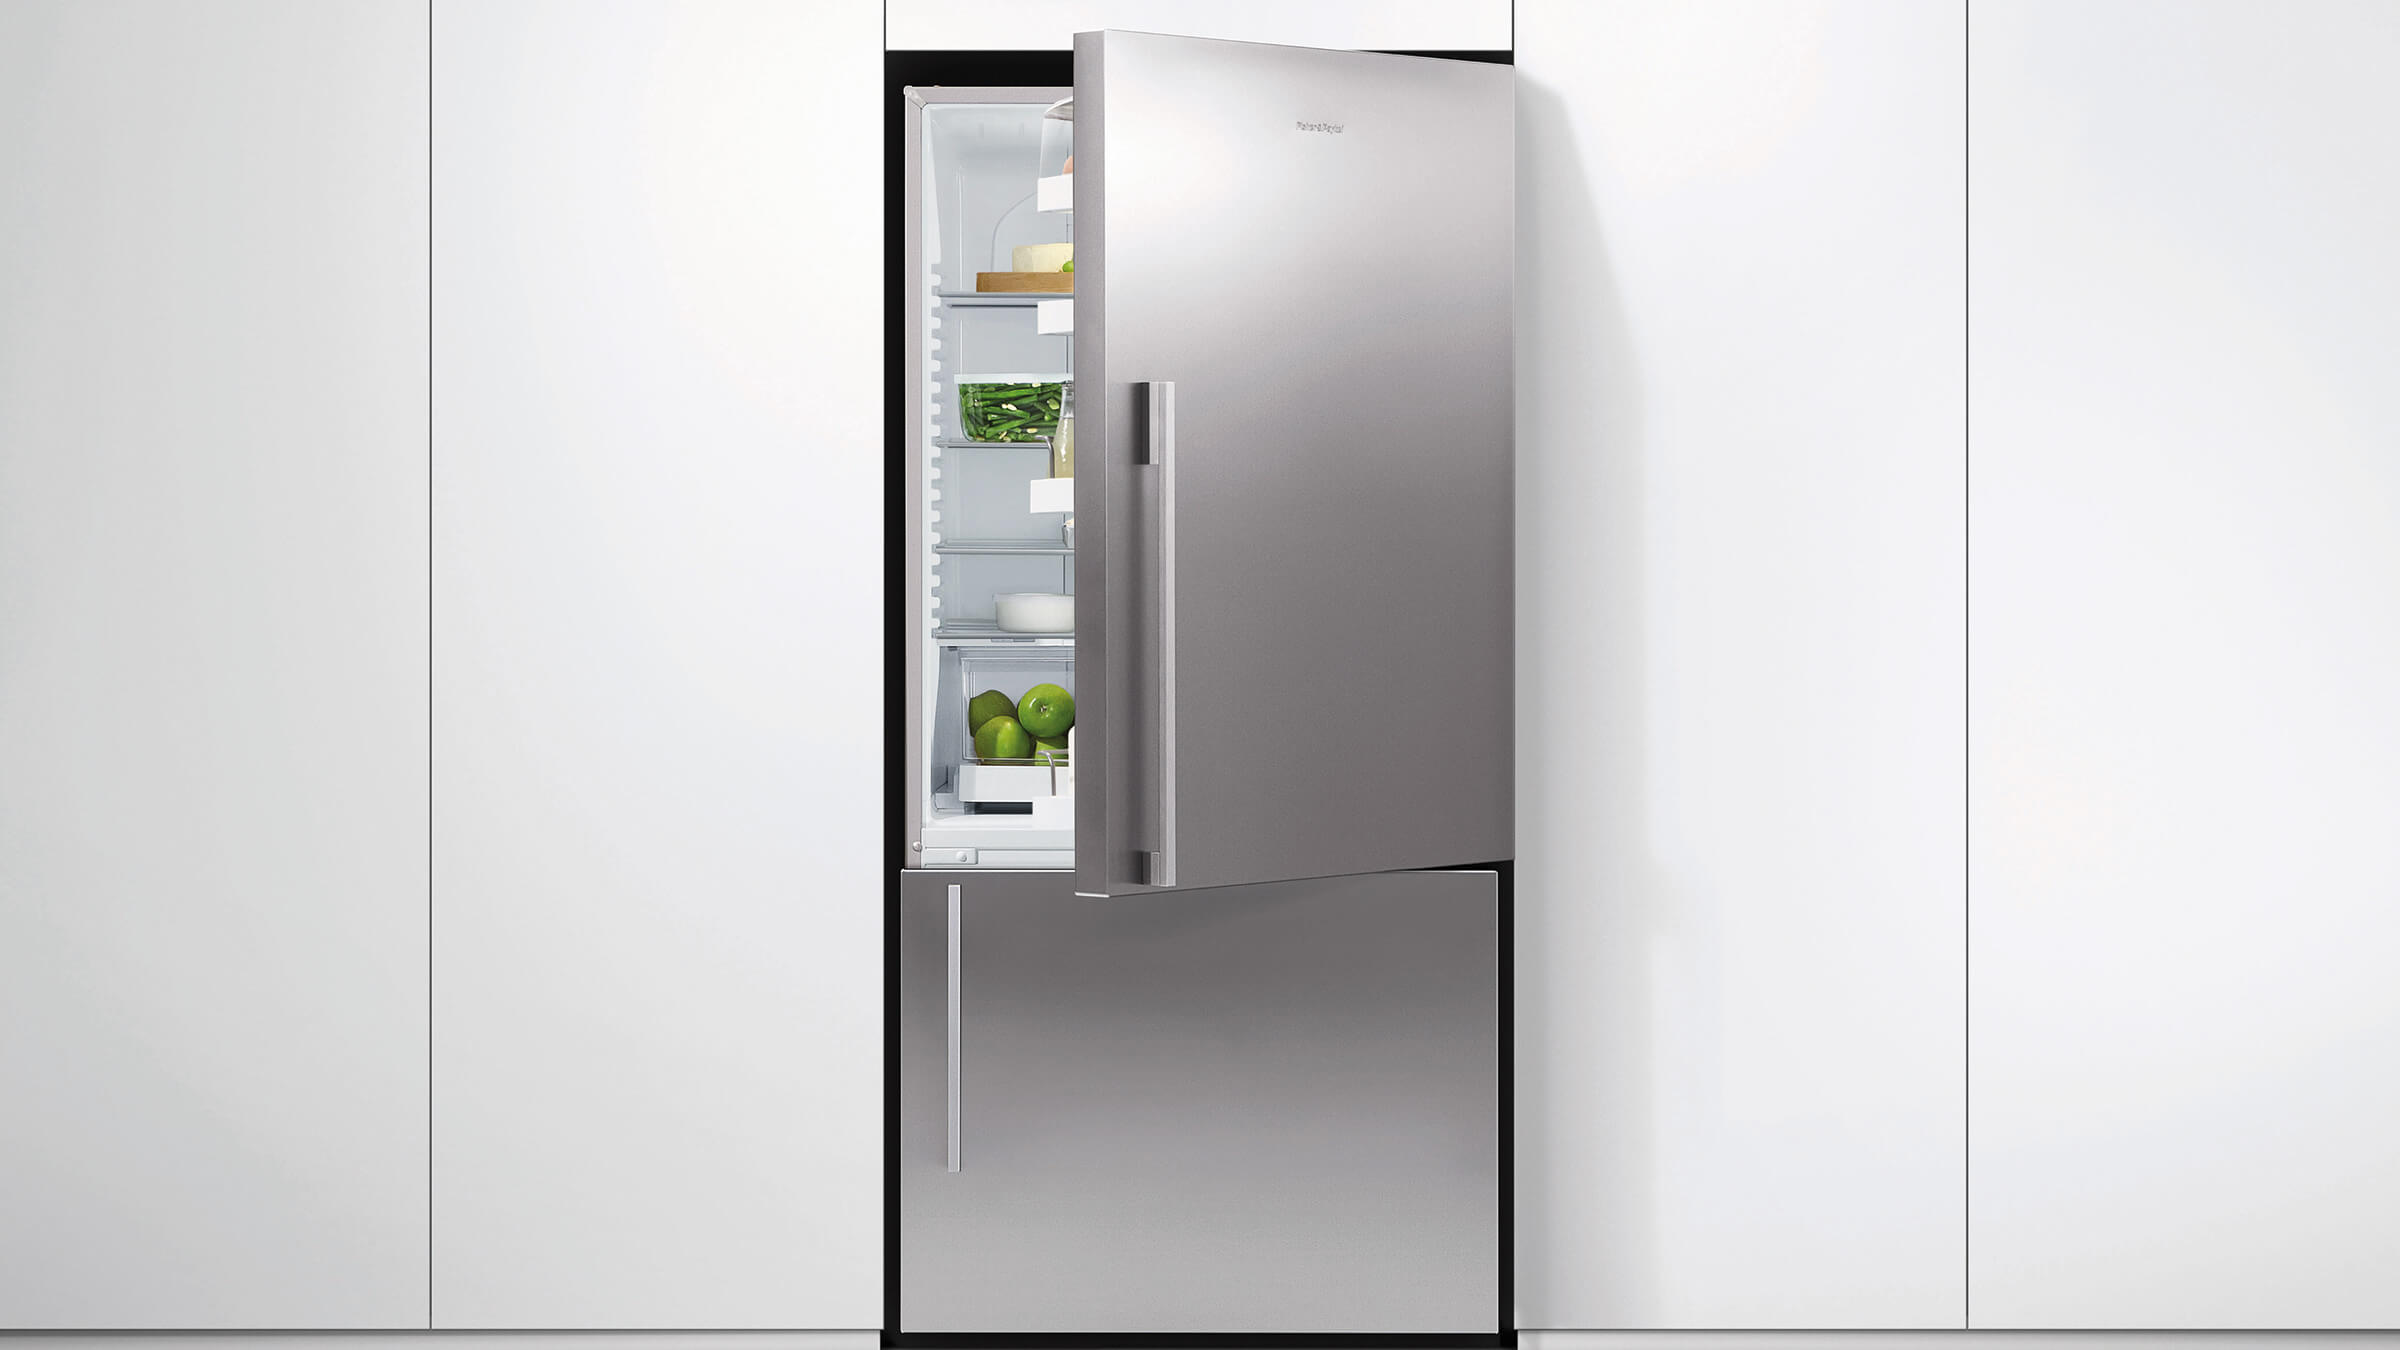 e522blxfd4 stainless steel fridge freezer fisher paykel uk rh fisherpaykel com Fisher Paykel Instruction Manual fisher & paykel e522b manual download